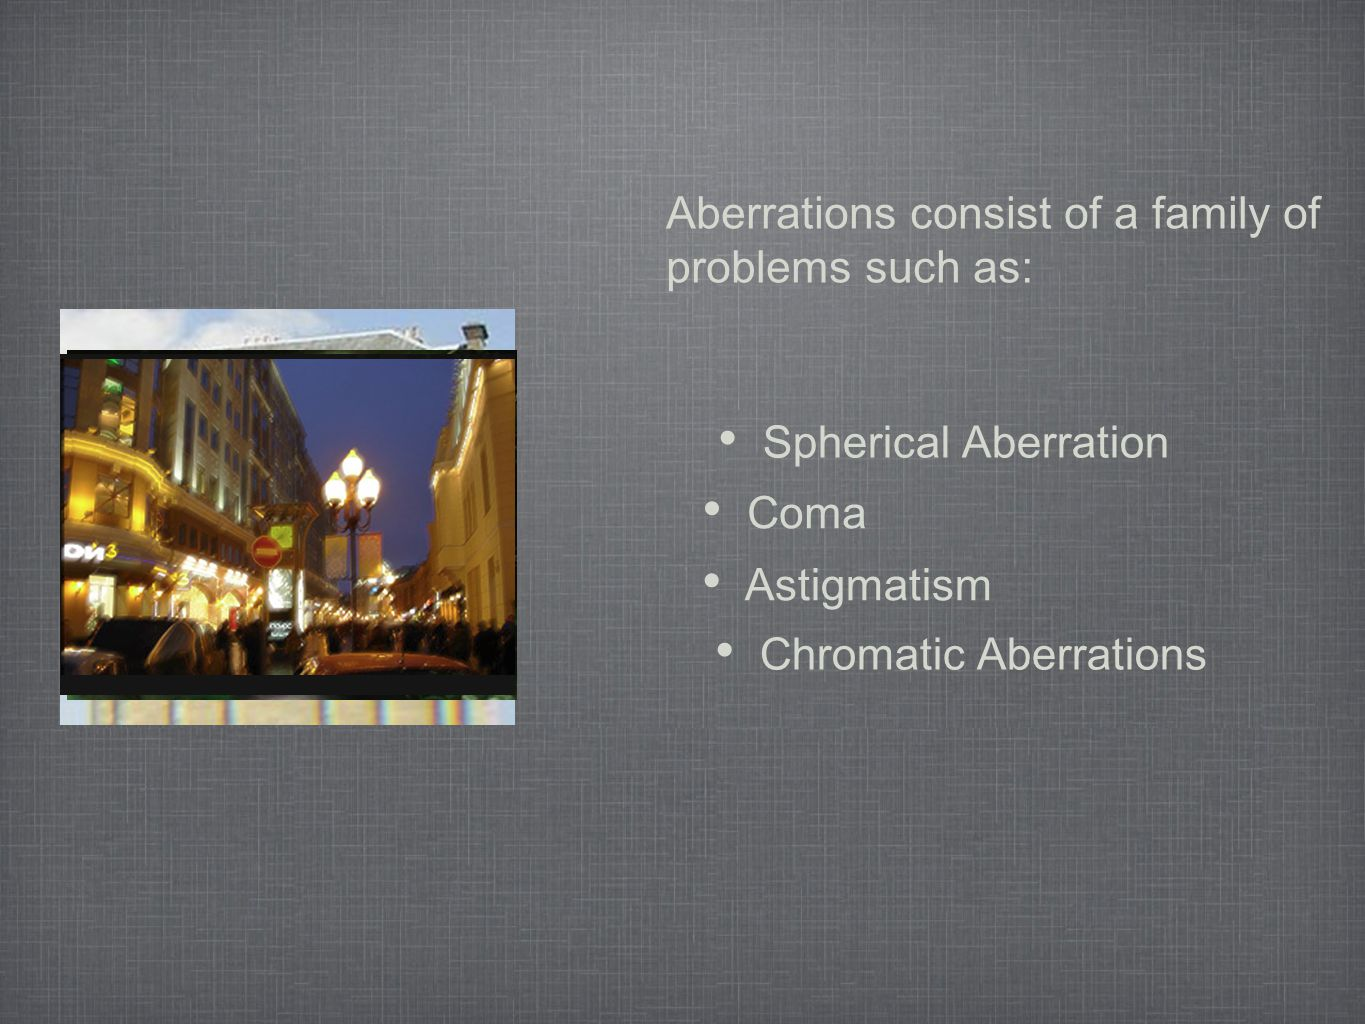 Aberrations consist of a family of problems such as: Chromatic Aberrations Spherical Aberration Coma Astigmatism